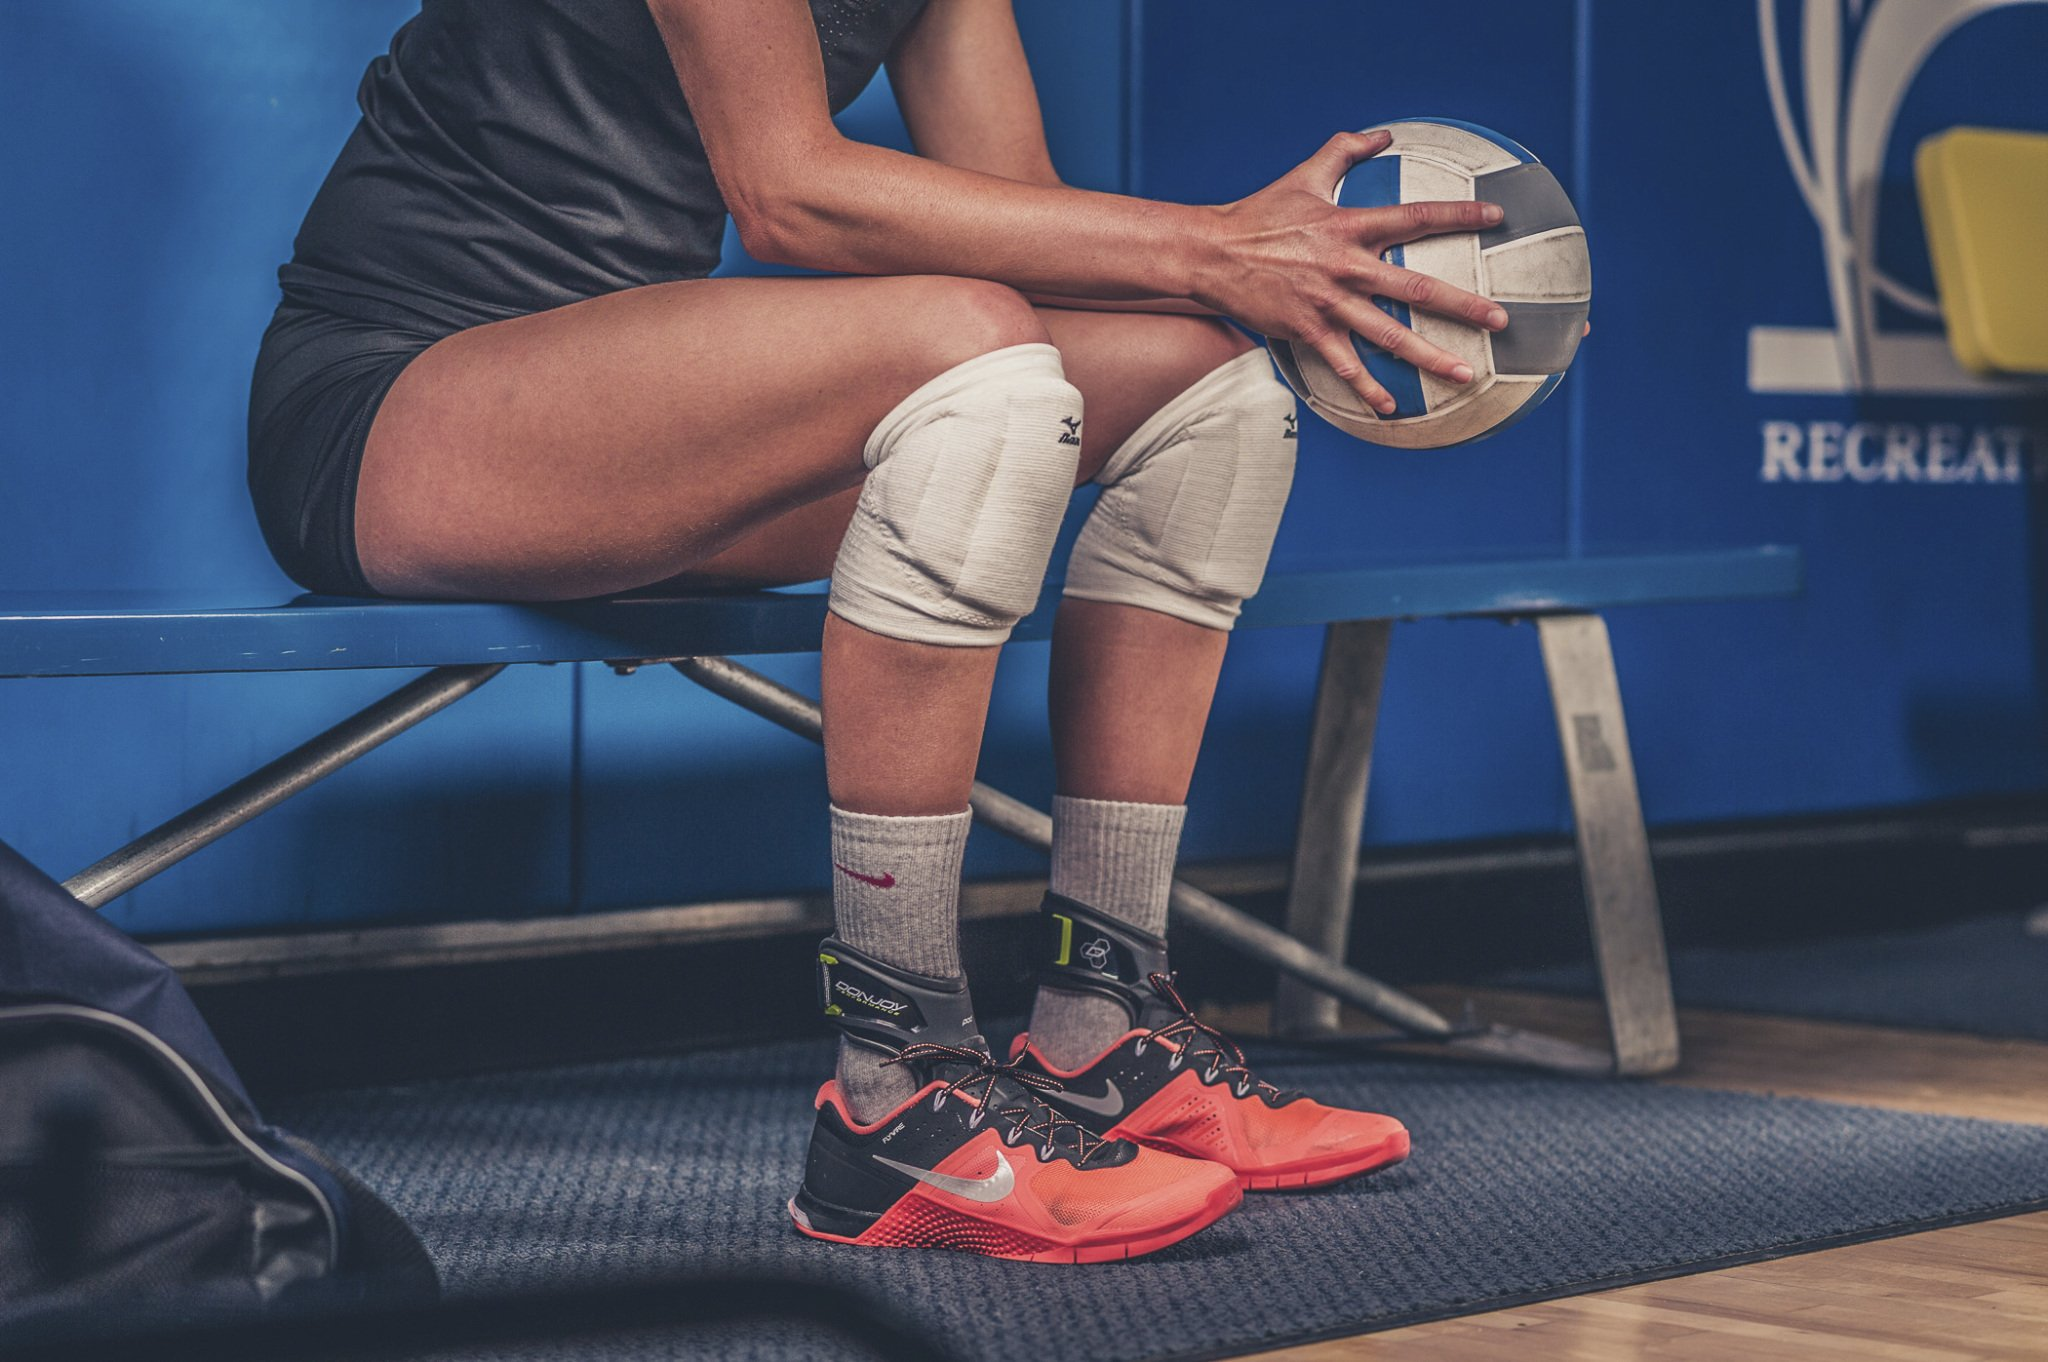 DonJoy Performance POD Ankle Brace, Best Support for Stability, Ankle Sprain, Roll, Strains for Football, Soccer, Basketball, Lacrosse, Volleyball -Medium- Right - Black by DonJoy Performance (Image #16)